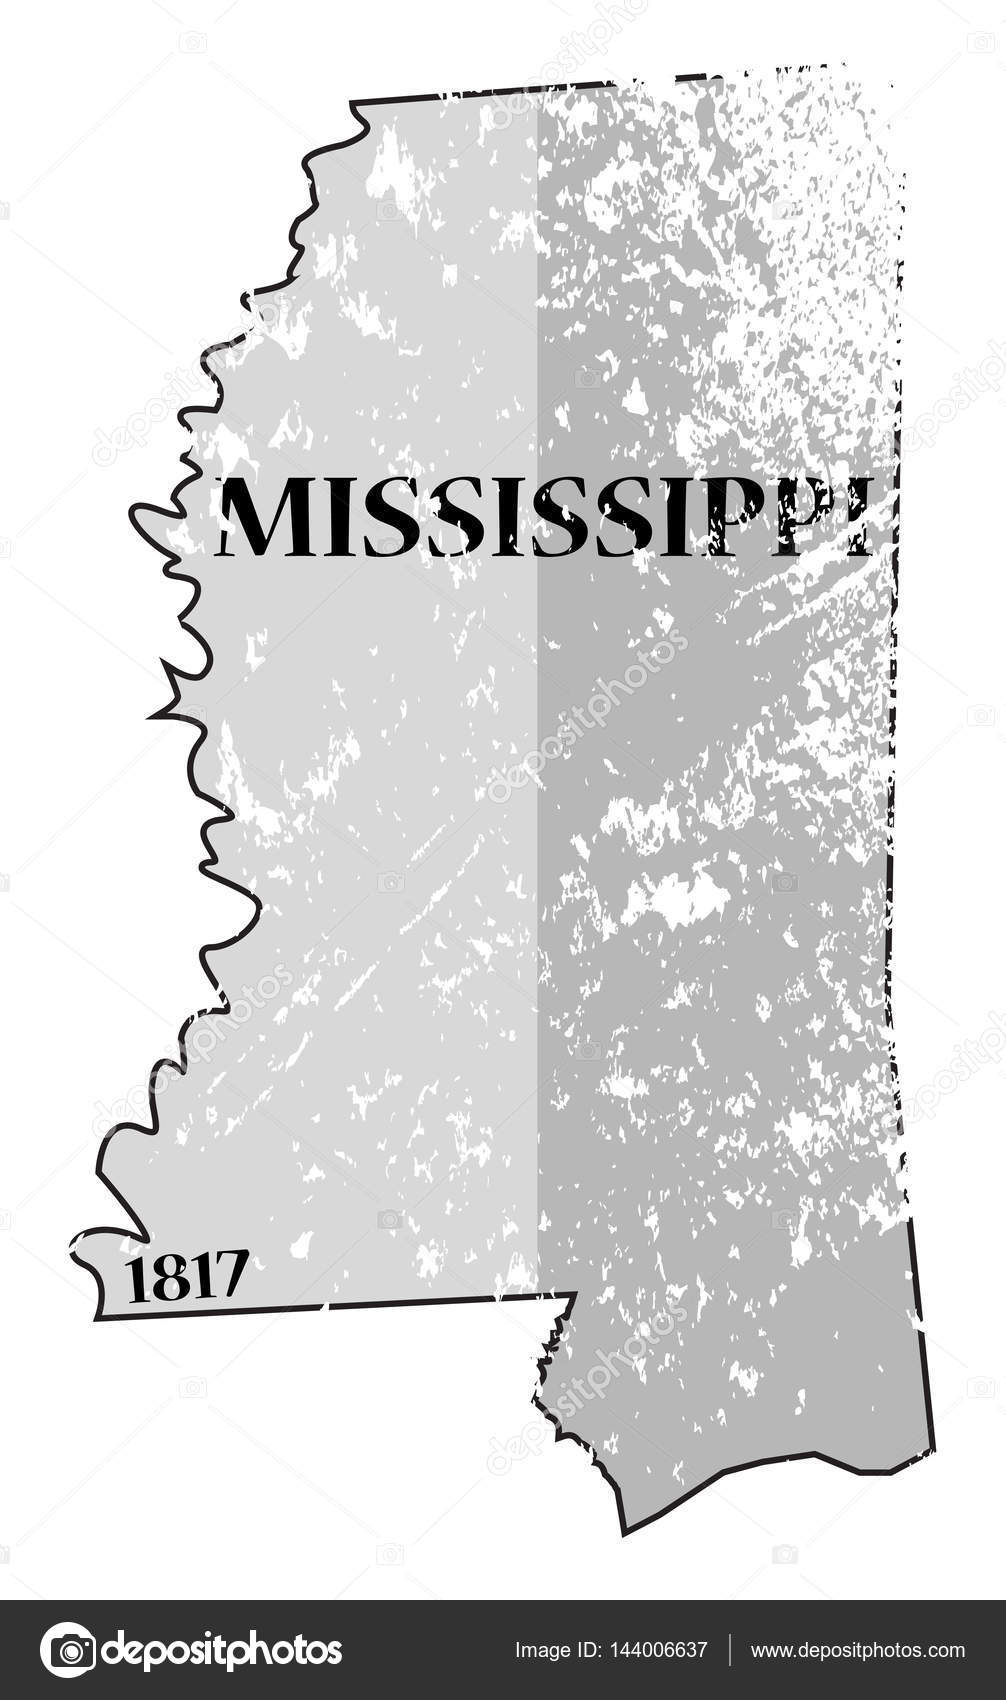 Mississippi State Map Outline.Mississippi State And Date Map Grunged Stock Vector C Davidscar